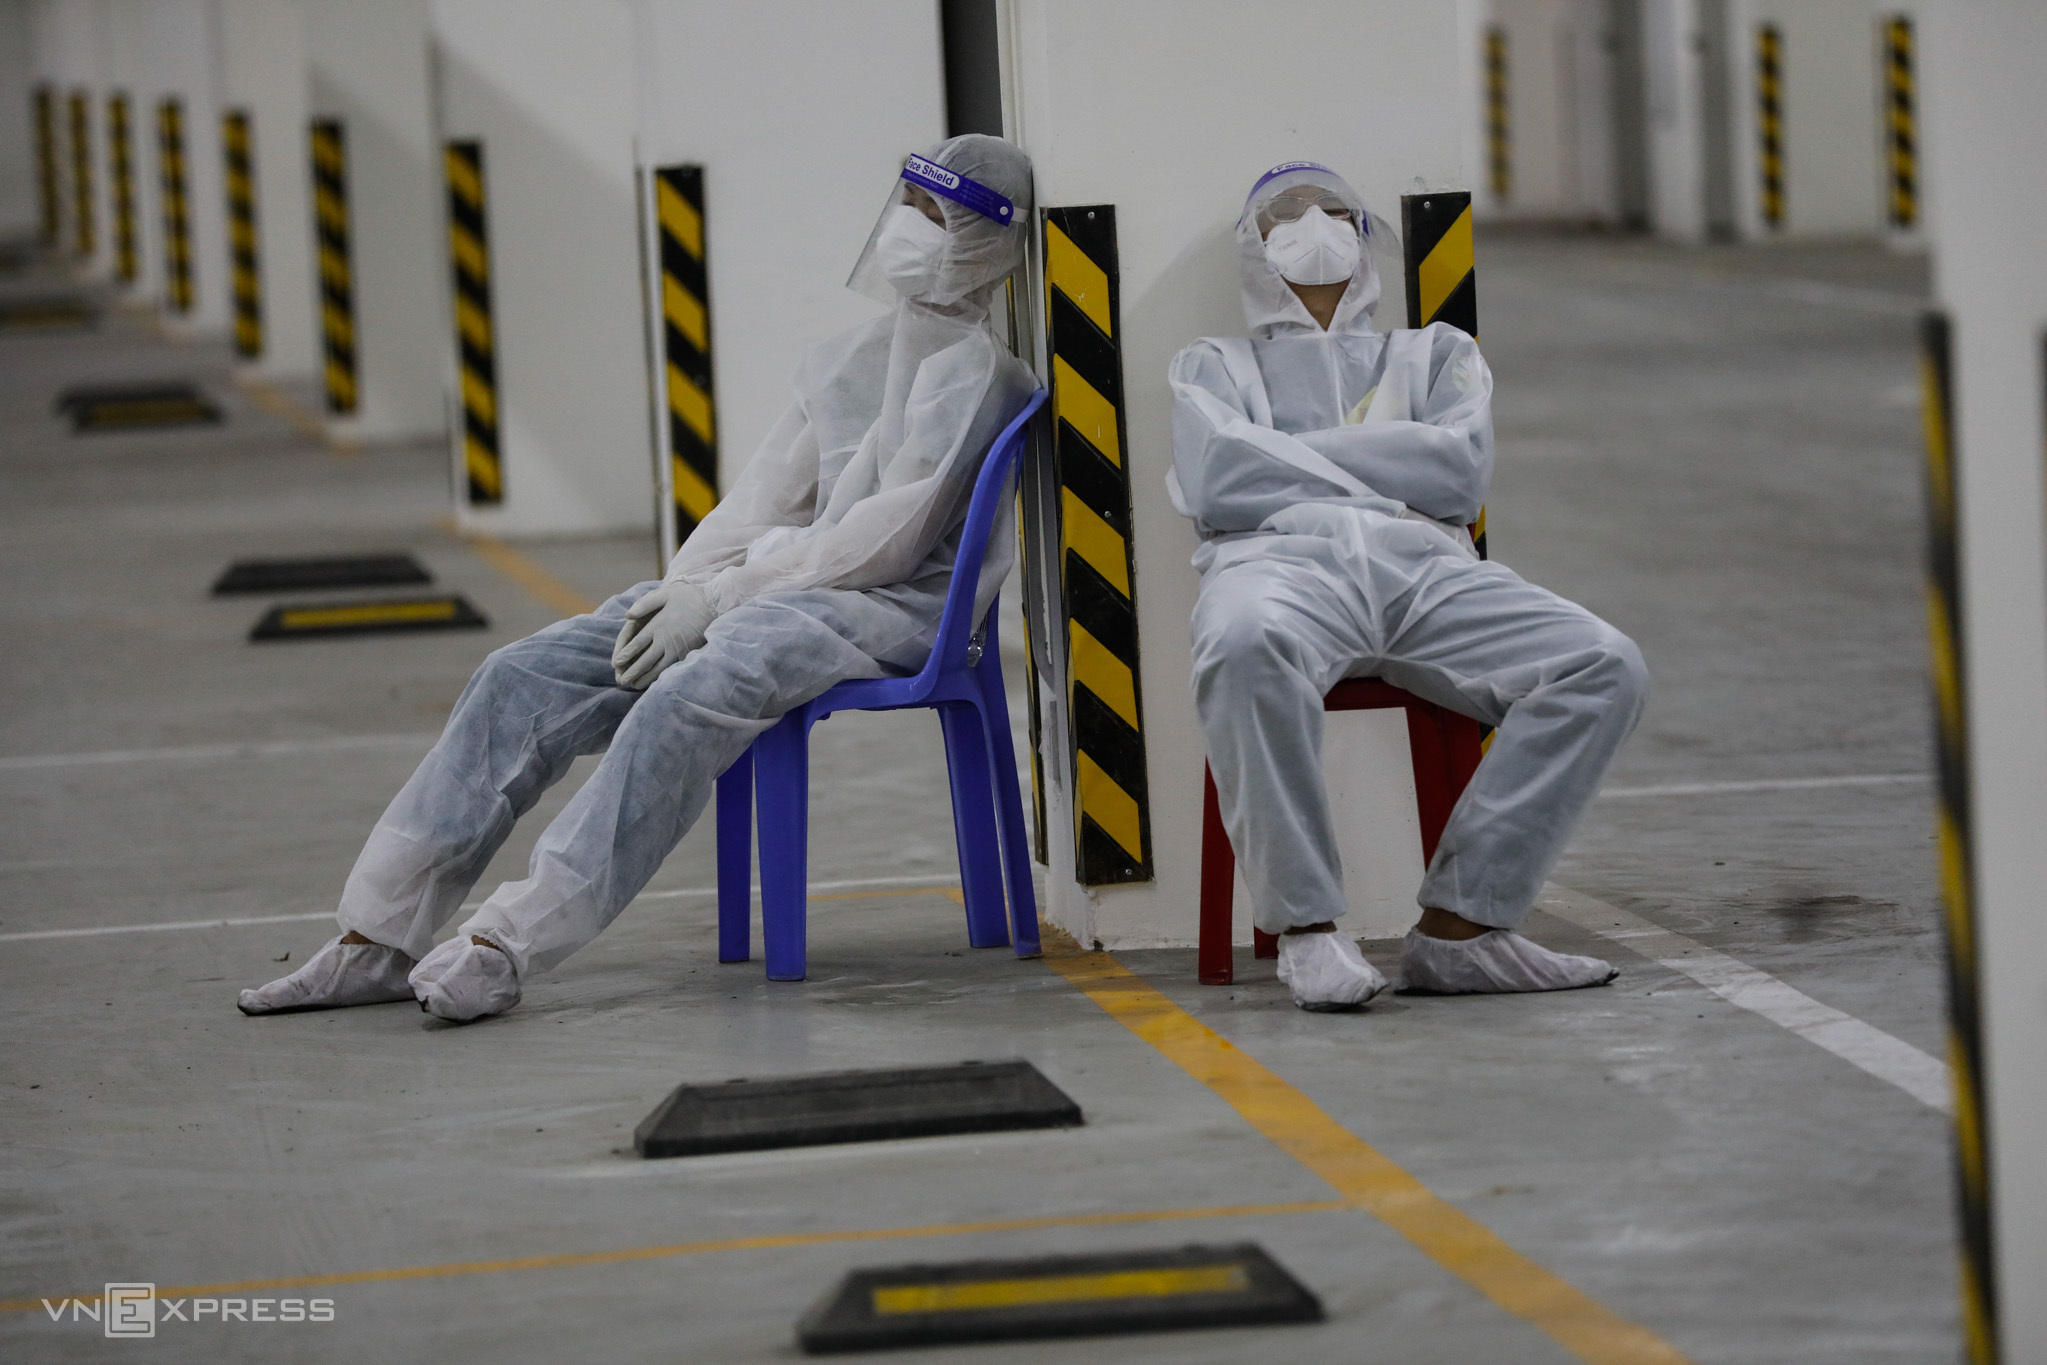 Medical staff take some rest after receiving Covid-19 patients at a field hospital in HCMCs Thu Duc City, July 2021. Photo by VnExpress/Huu Khoa